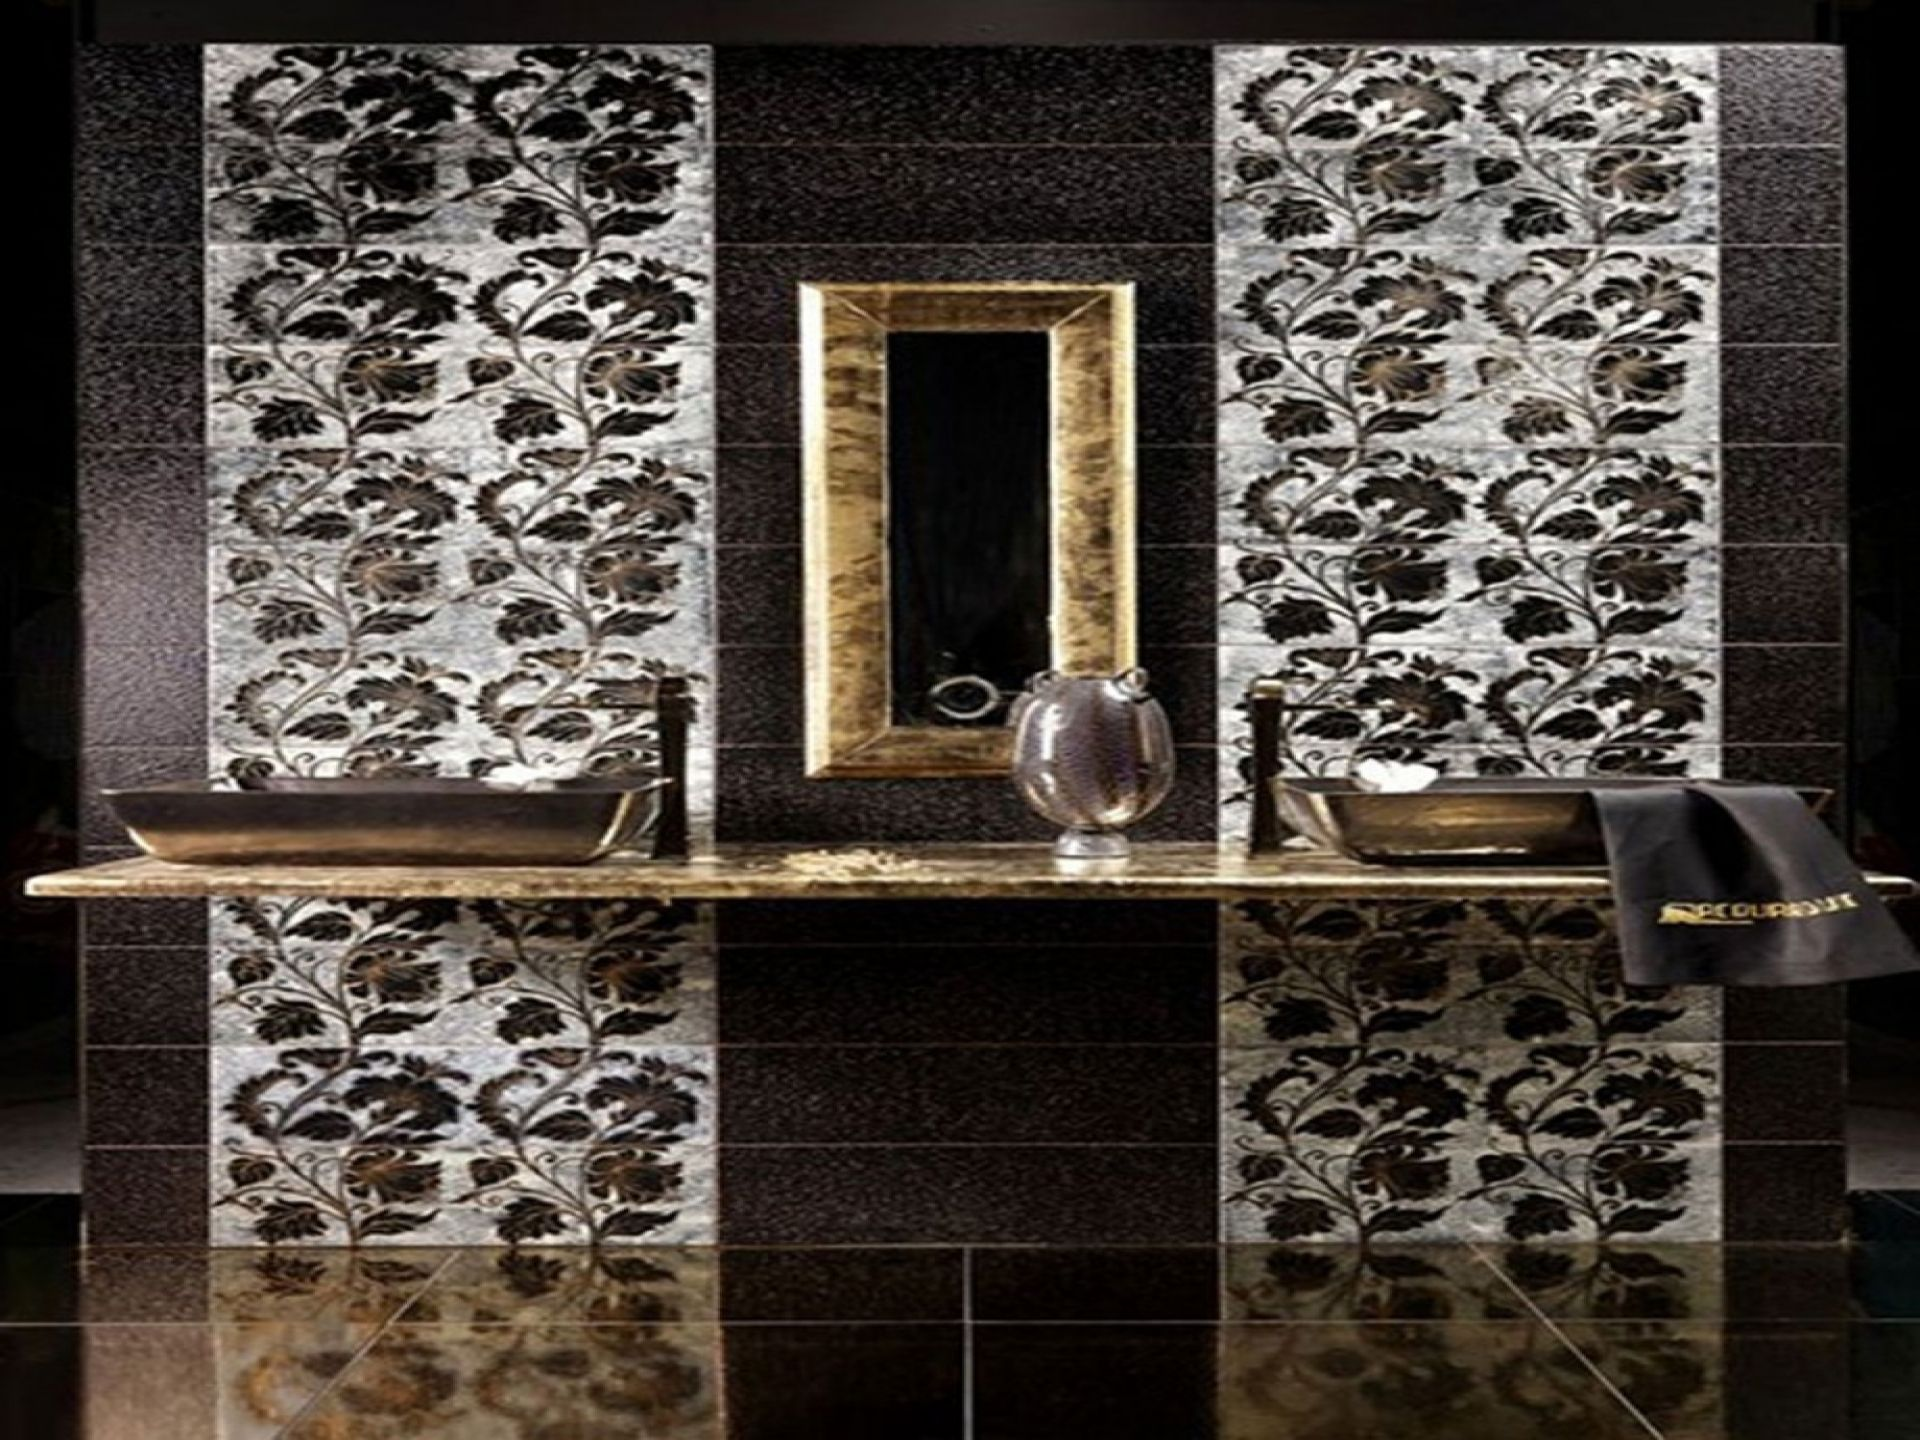 Mosaic Tile Shower Ideas: Mosaic Bathroom Tile Designs Decorating Ideas With Floral